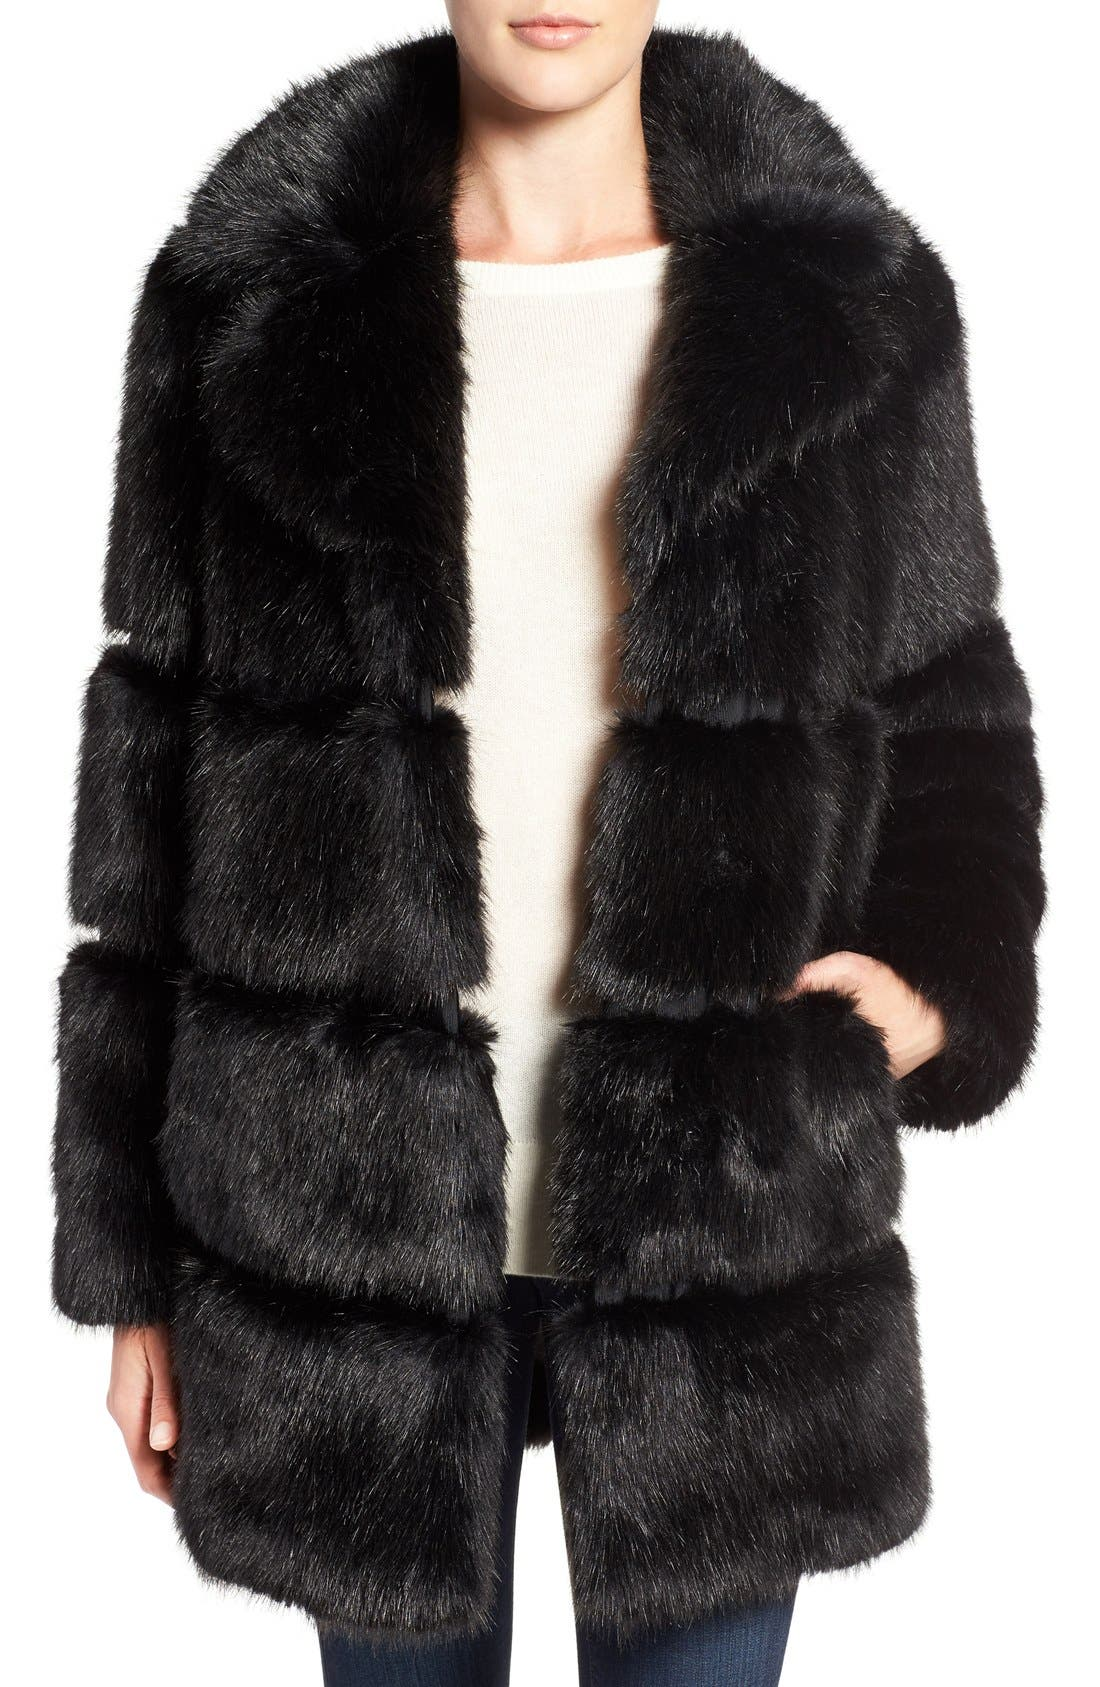 grooved faux fur coat,                             Main thumbnail 1, color,                             001